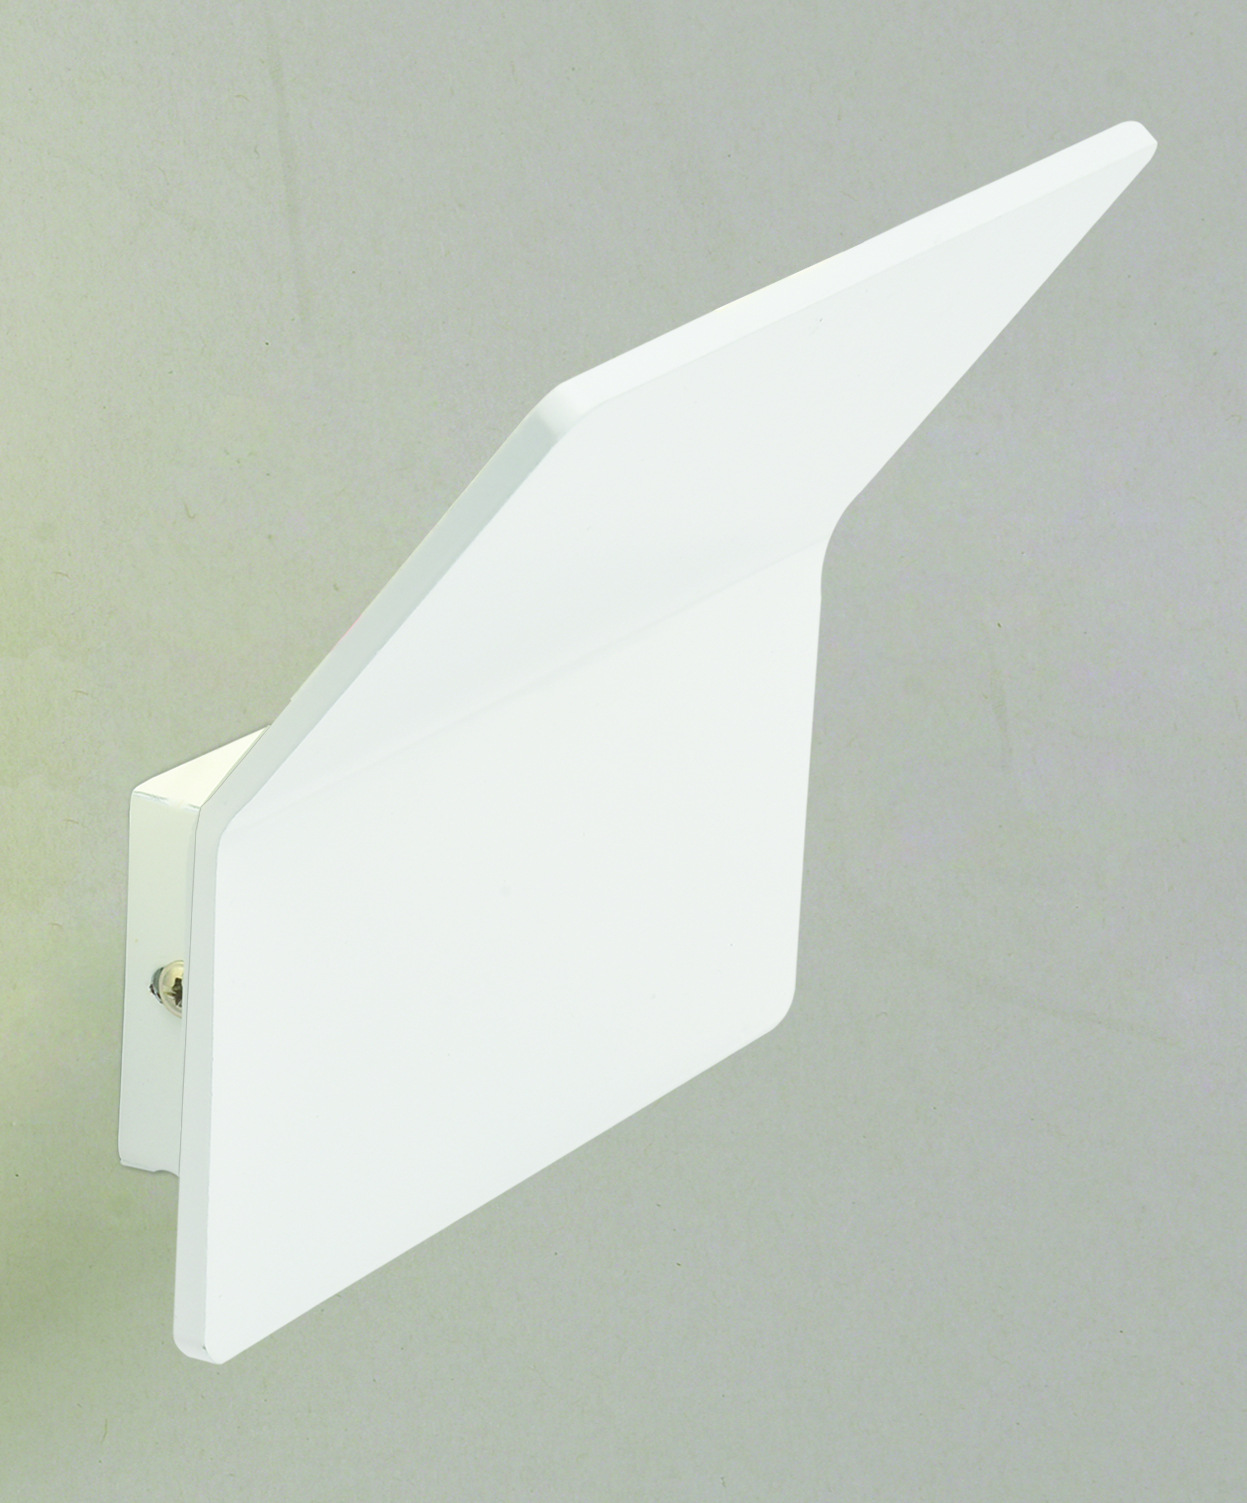 Led Wall Lights Price In Pakistan: LED WALL LAMP 18140